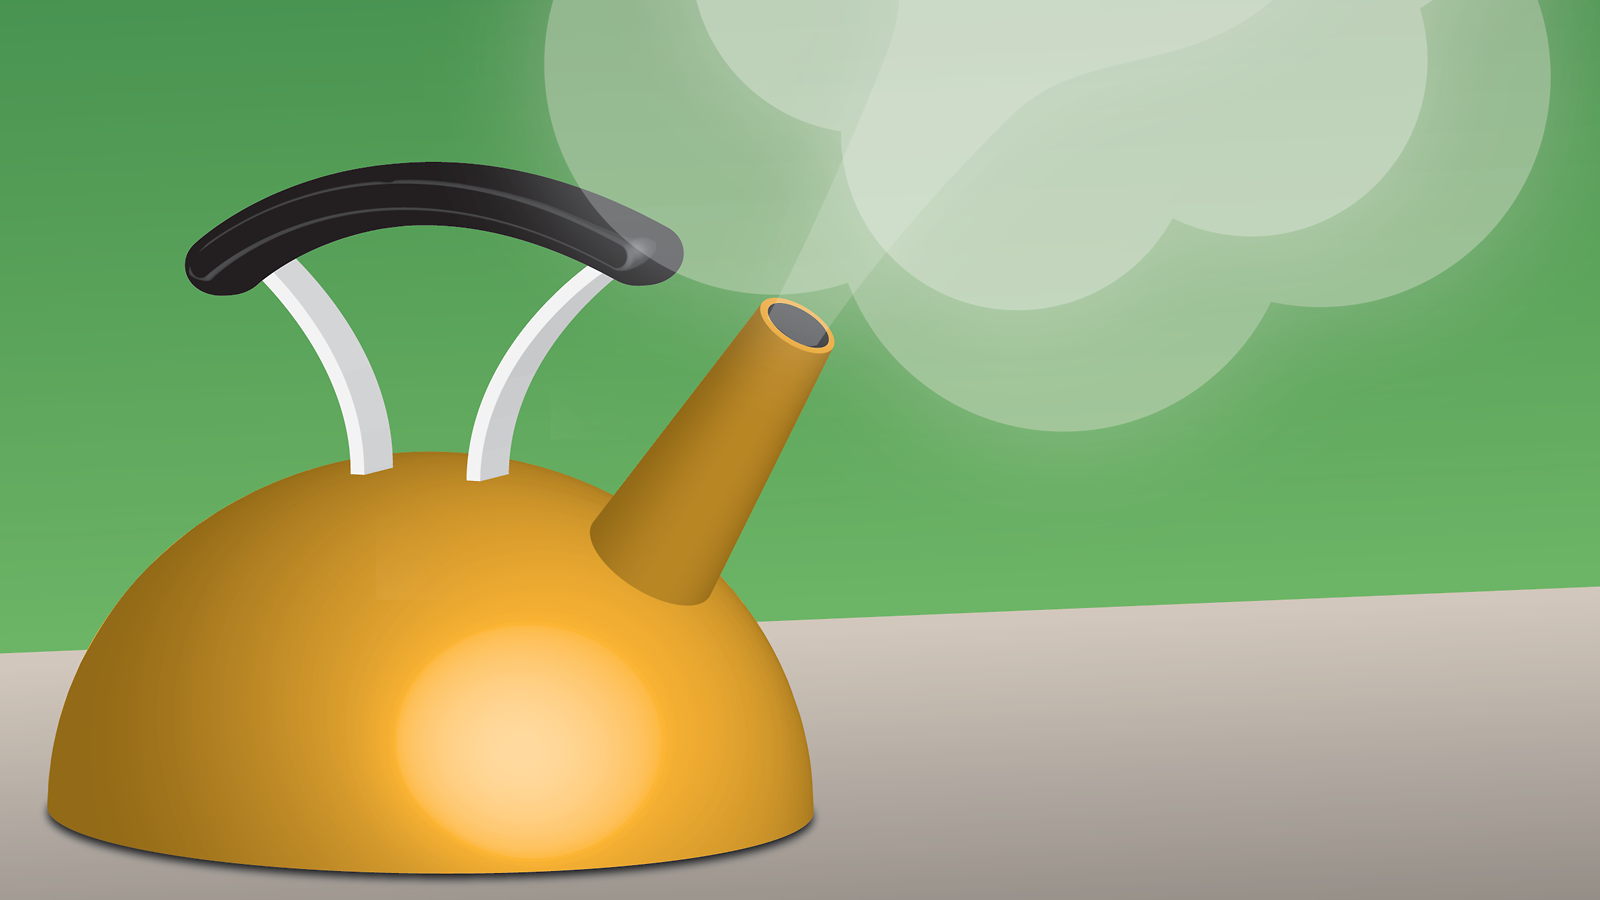 An illustration of a teapot letting off steam